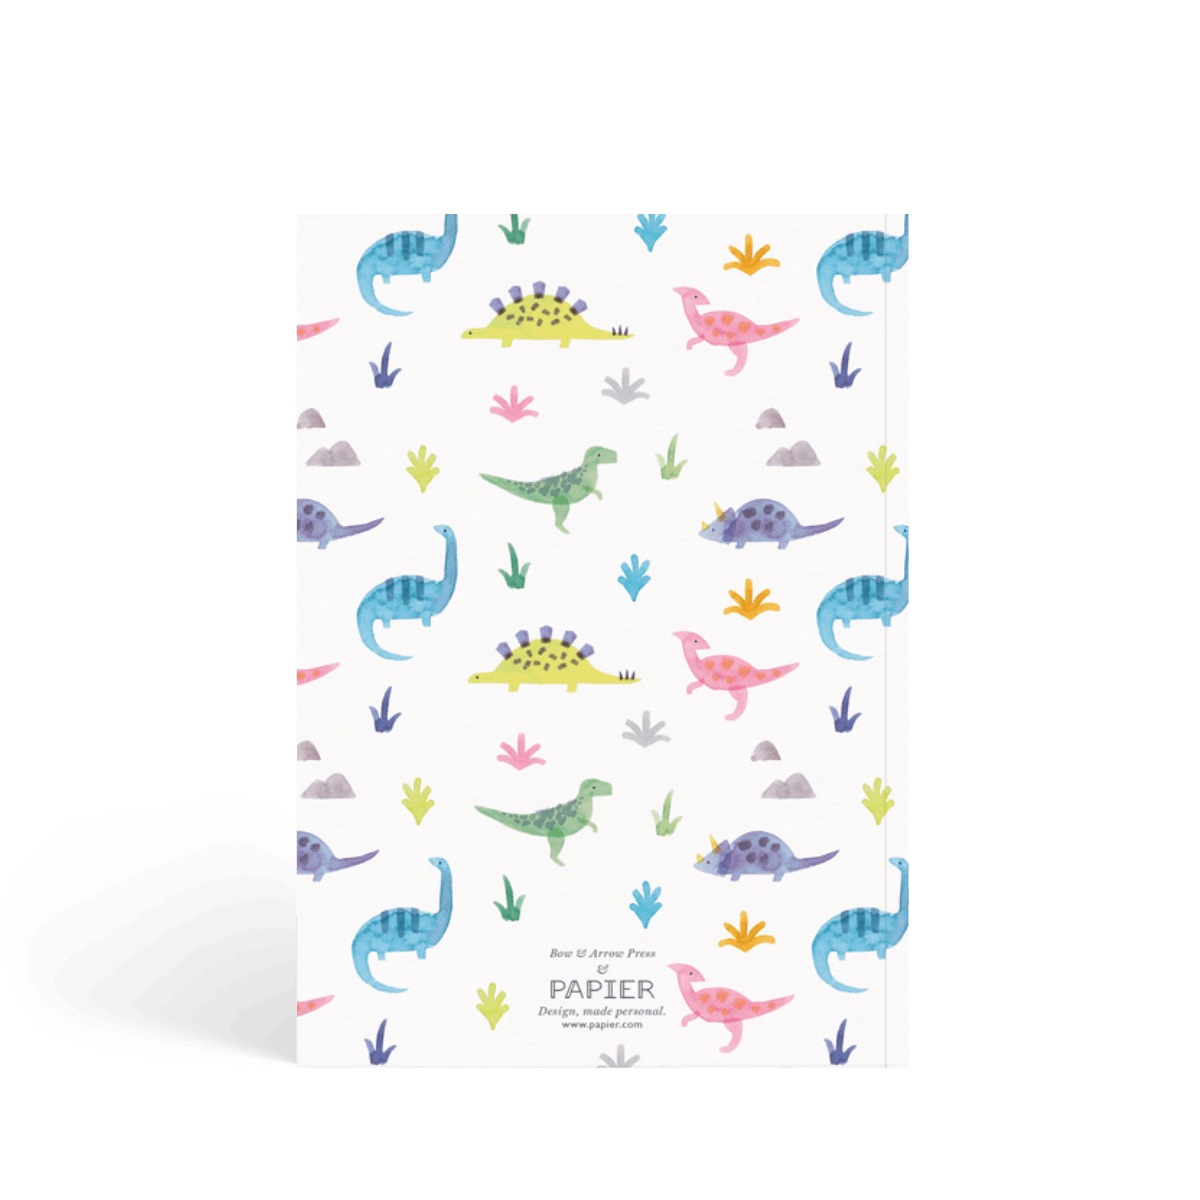 Https%3a%2f%2fwww.papier.com%2fproduct image%2f29525%2f5%2fbright dinosaurs 7442 arriere 1508252064.png?ixlib=rb 1.1